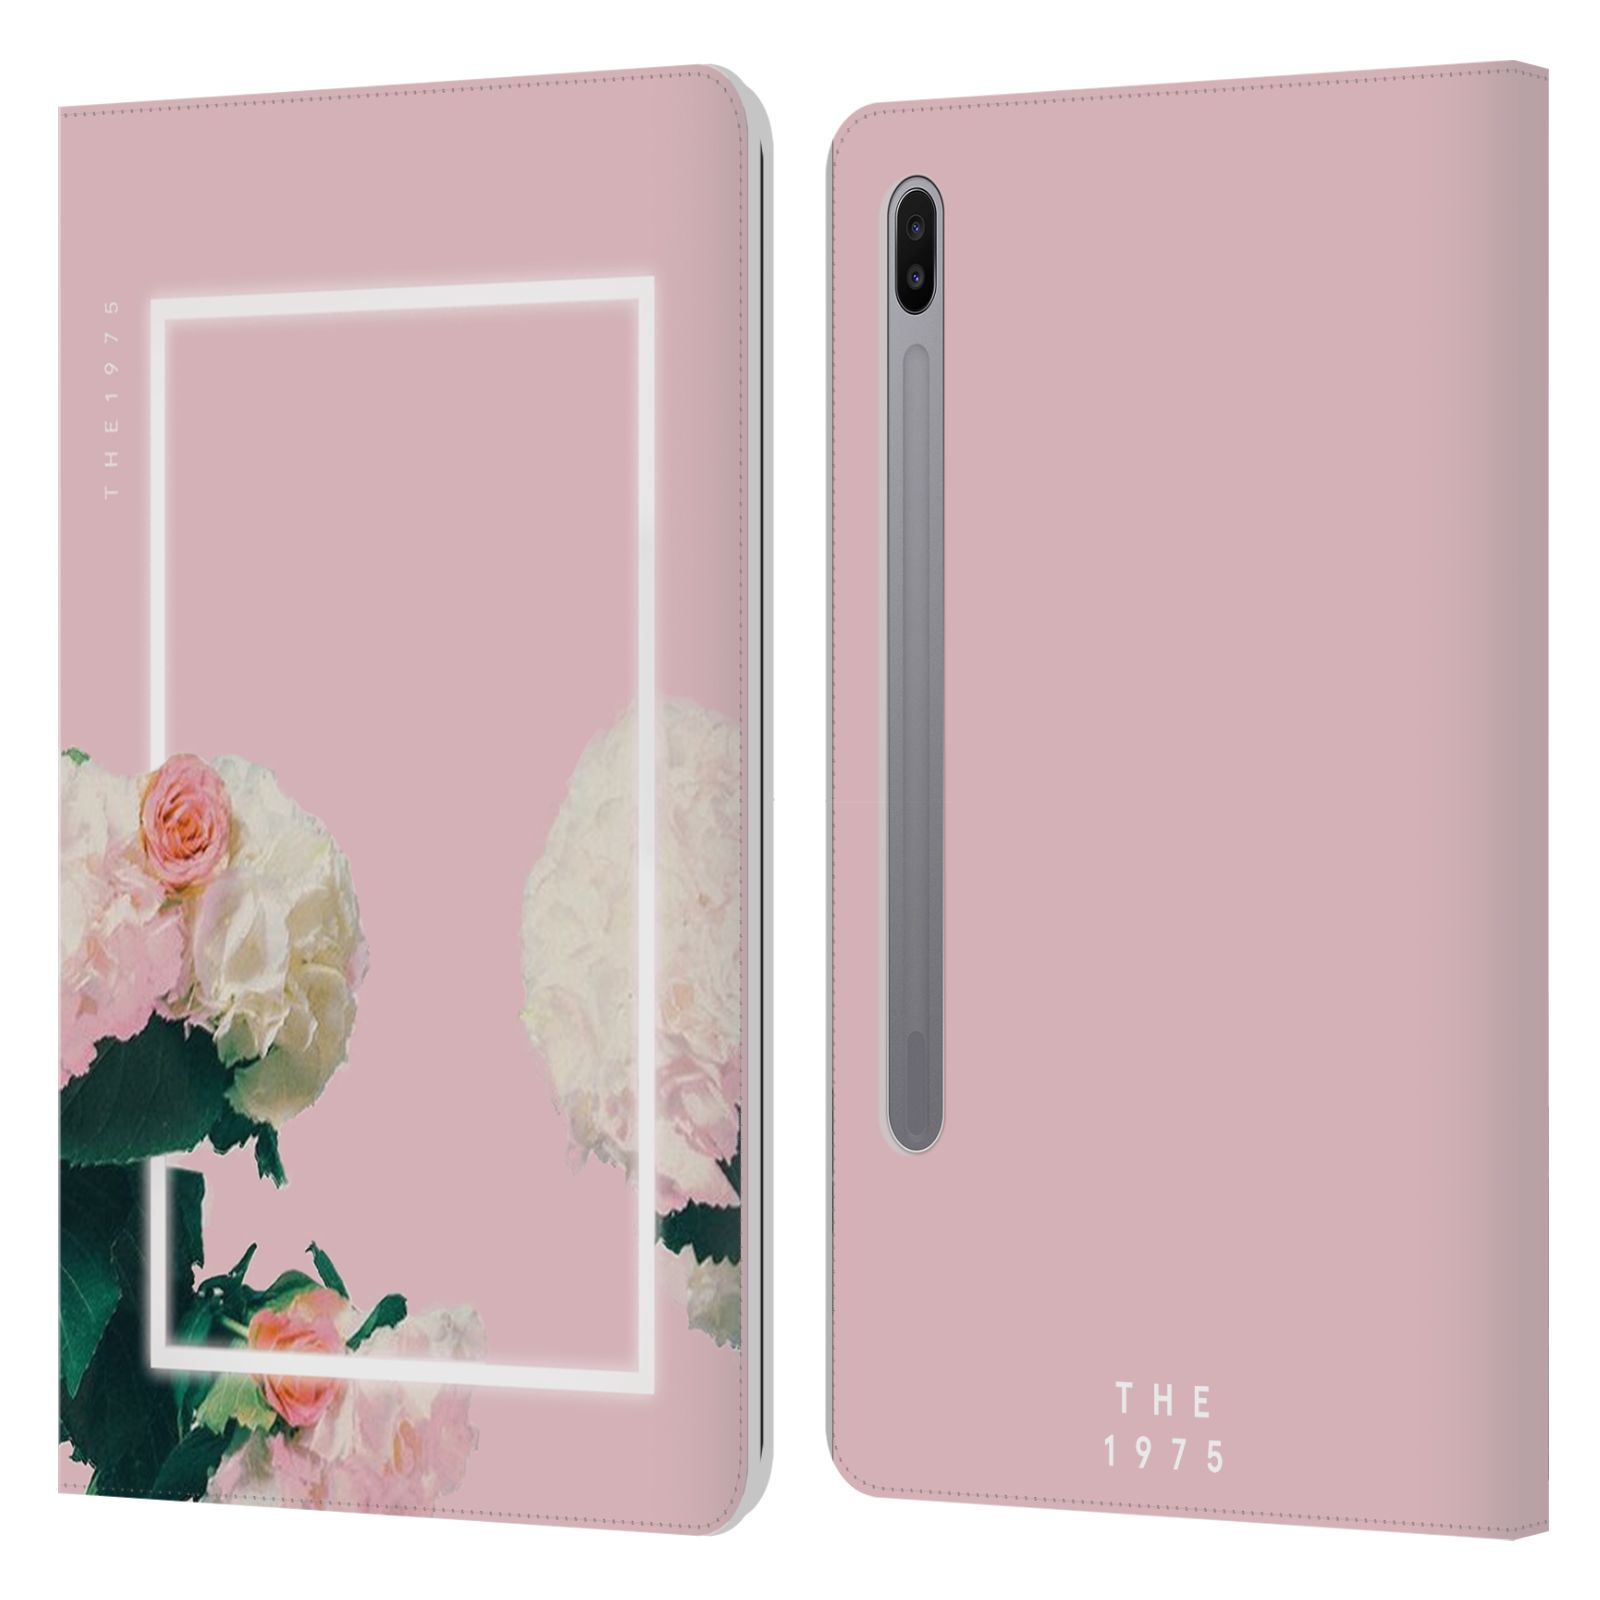 Official The 1975 Key Art Roses Pink Leather Book Wallet Case For Samsung Galaxy Tab S6 (2019)